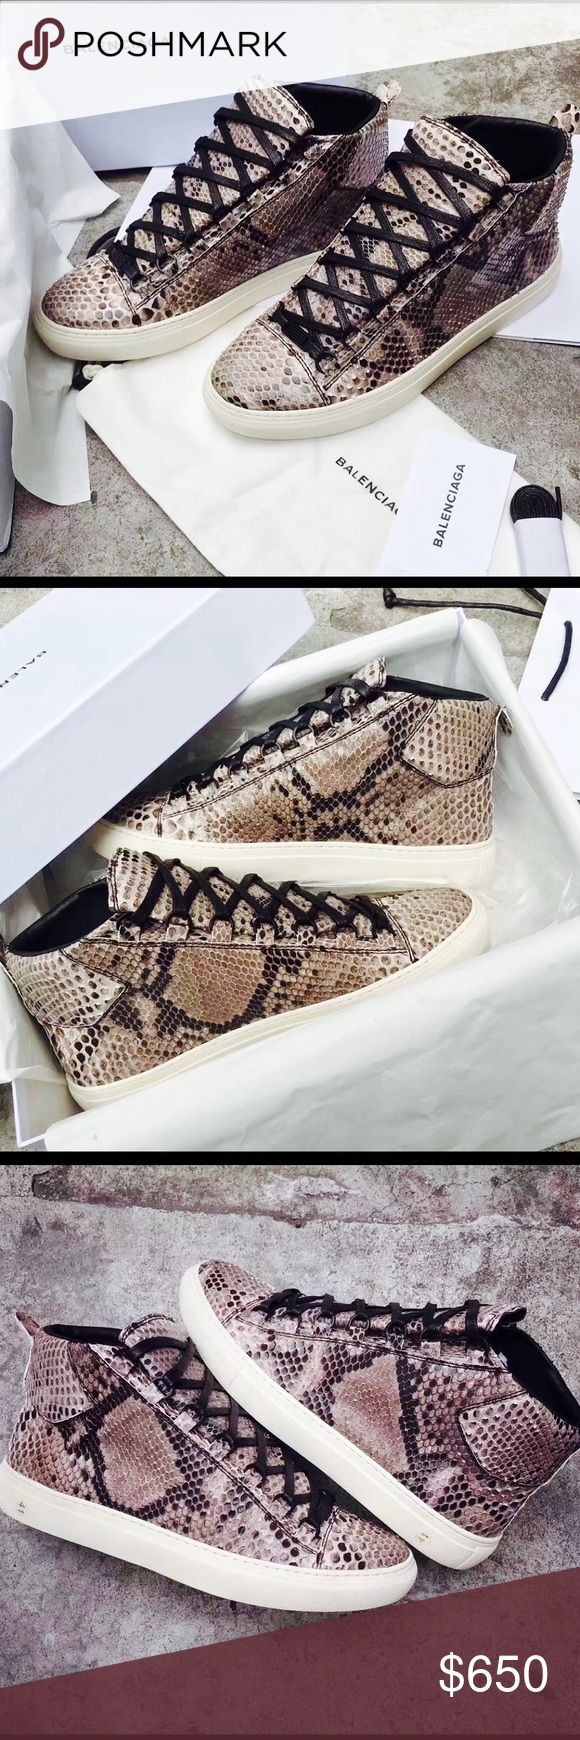 Men's Python belenciagas🔥🔥🔥😎🤙🏾 Brand new pair of men's python Belenciagas Real and authentic as well as real python 🐍 😎🔥🤤 comment before purchasing to check size and availability most sizes are available im also selling from my online store so your size may vary ‼️‼️‼️ Balenciaga Shoes Sneakers